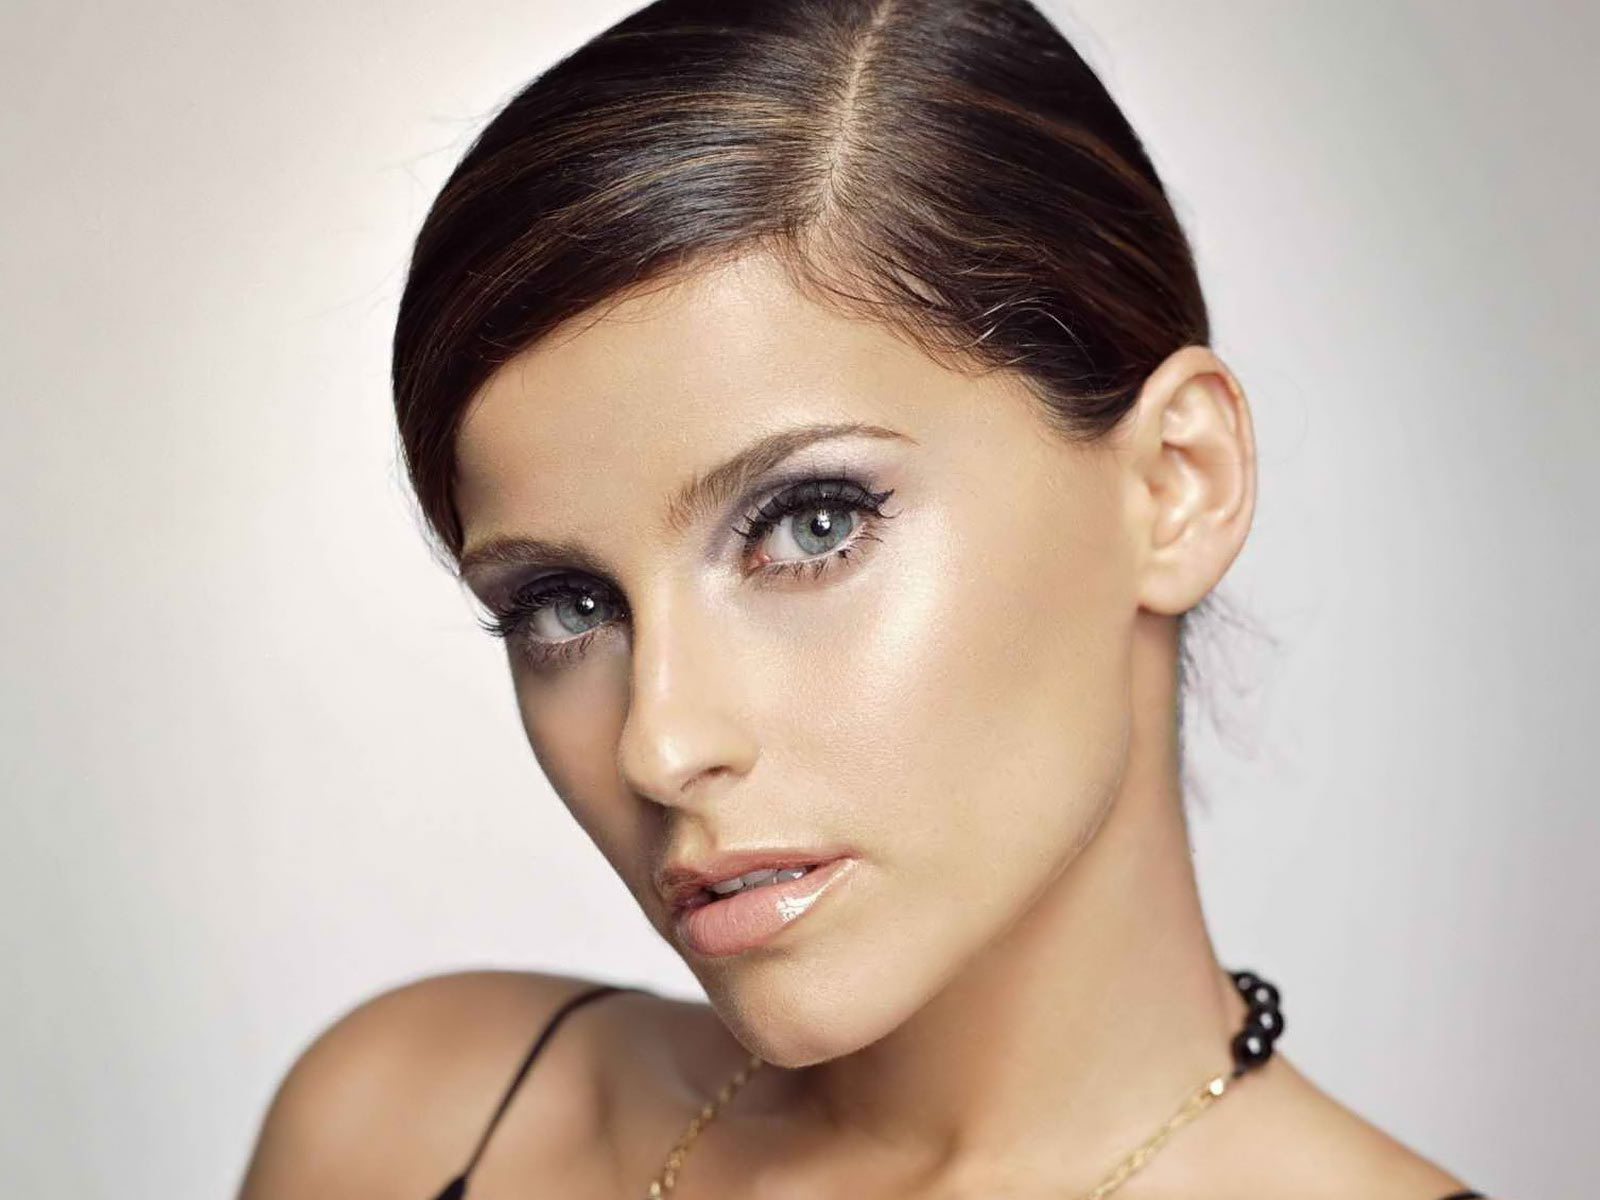 Desktop backgrounds · Celebrities · Music Nelly Furtado ...